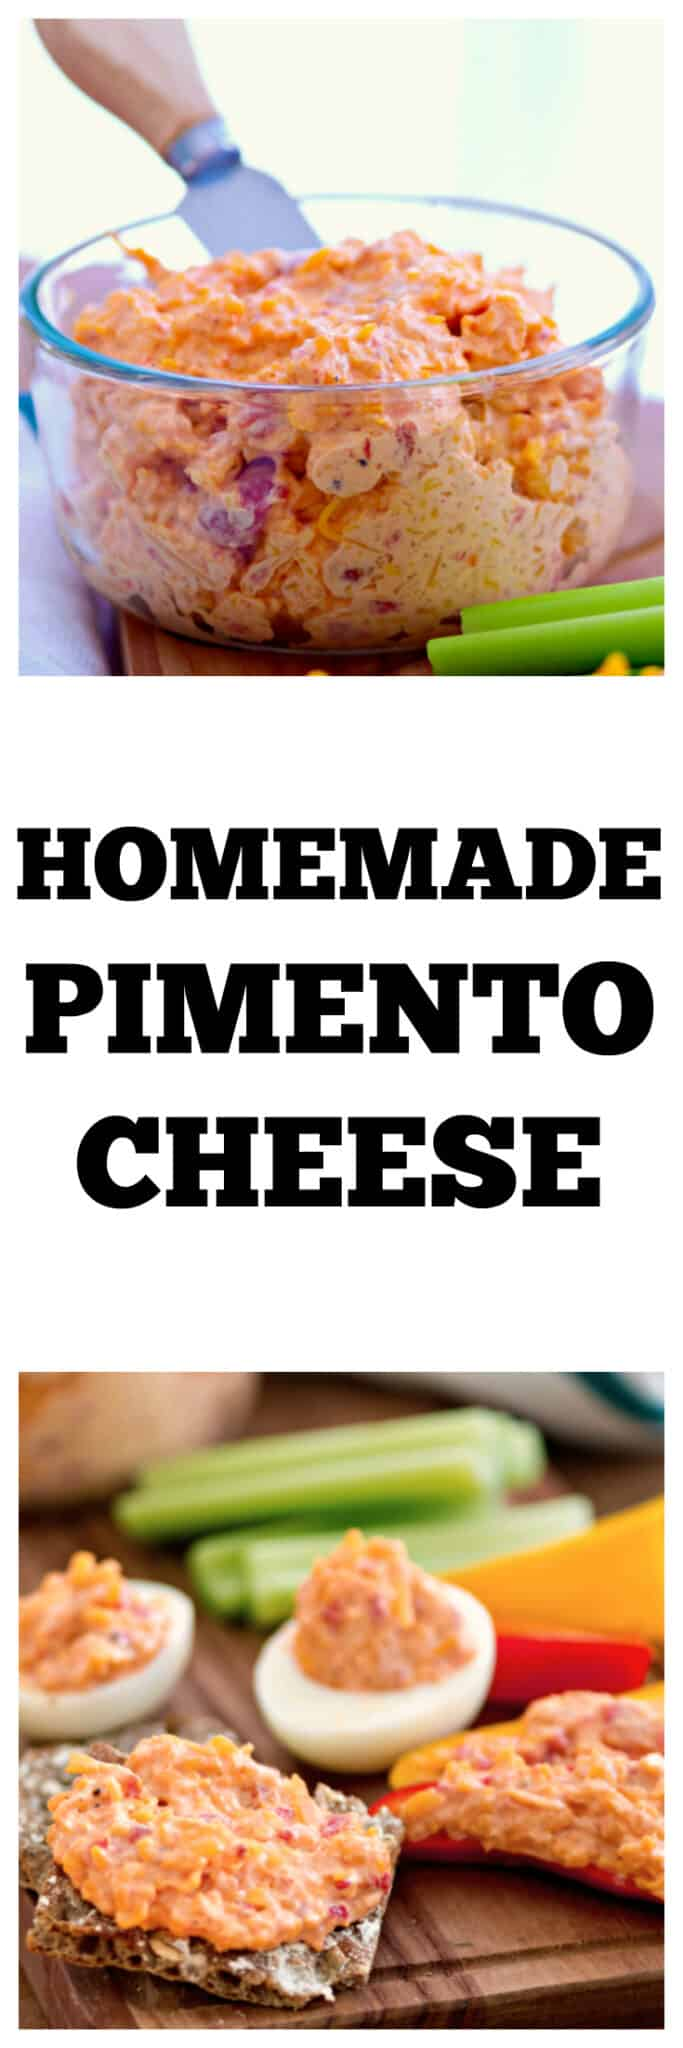 Homemade Pimento Cheese - Make this easy appetizer in minutes. It's perfect football food or as a low-carb, keto snack. #pimentocheese #cheese #appetizer #snack #footballfood #dip #lowcarb #keto